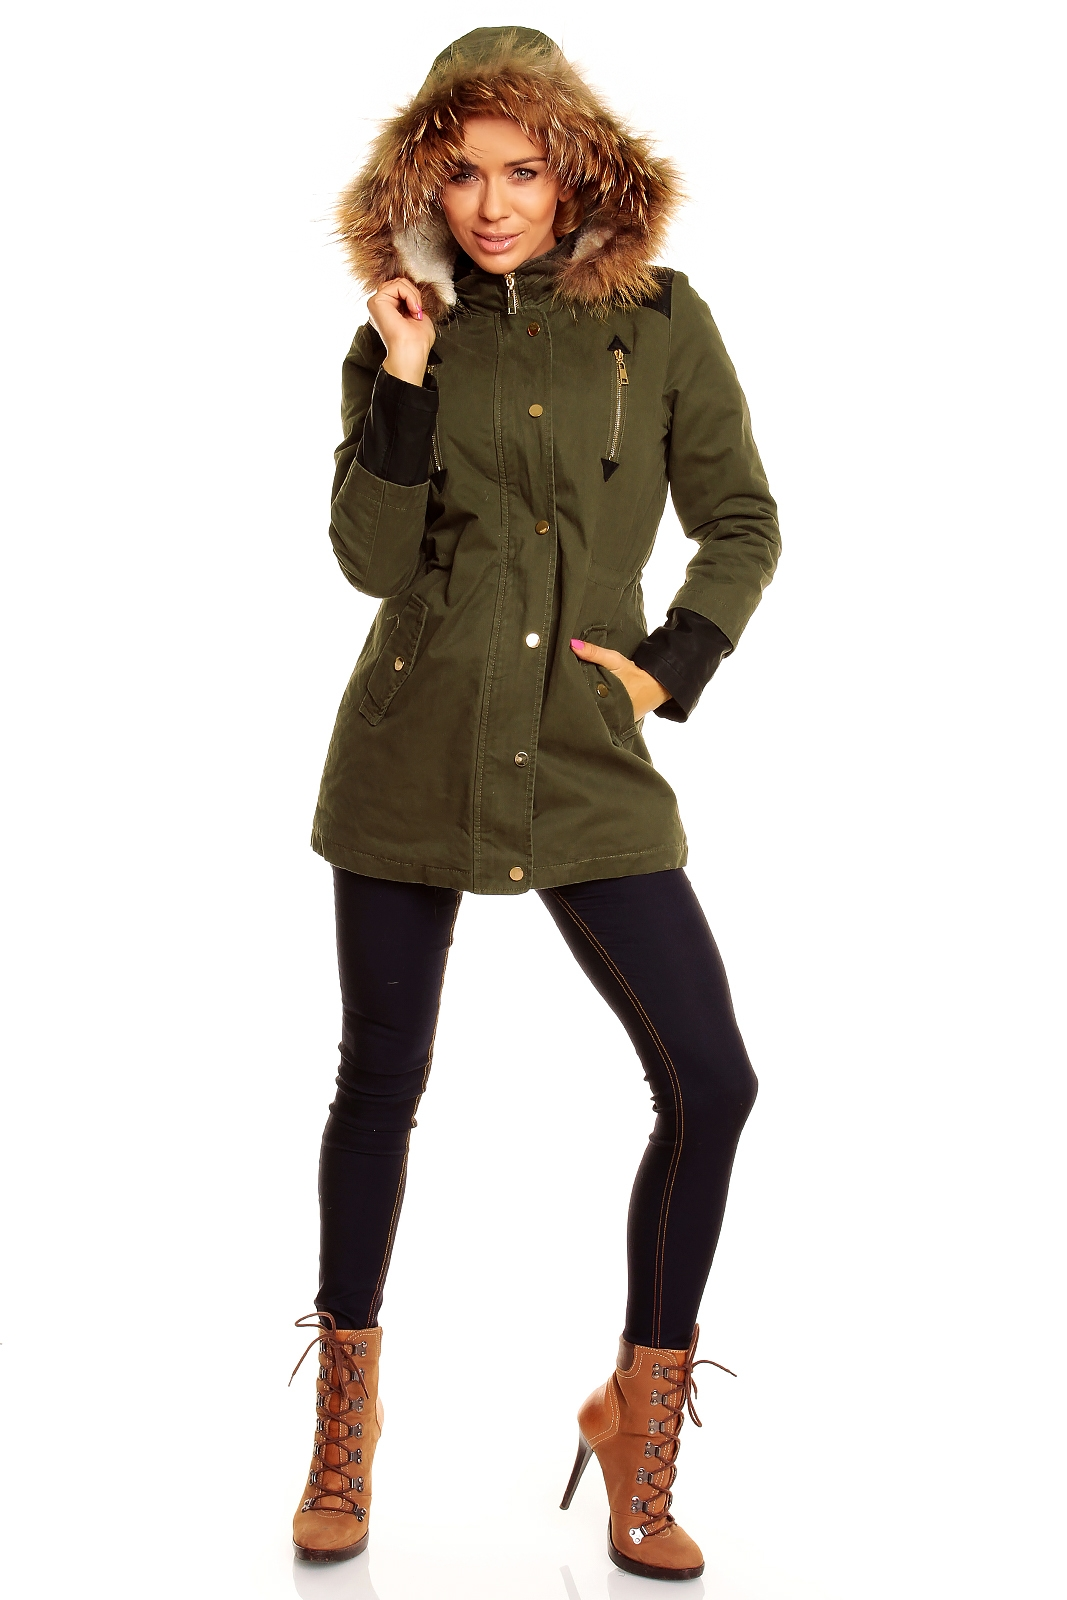 damen parka mit echtpelz kapuze khaki winterjacke g nstige kleider. Black Bedroom Furniture Sets. Home Design Ideas